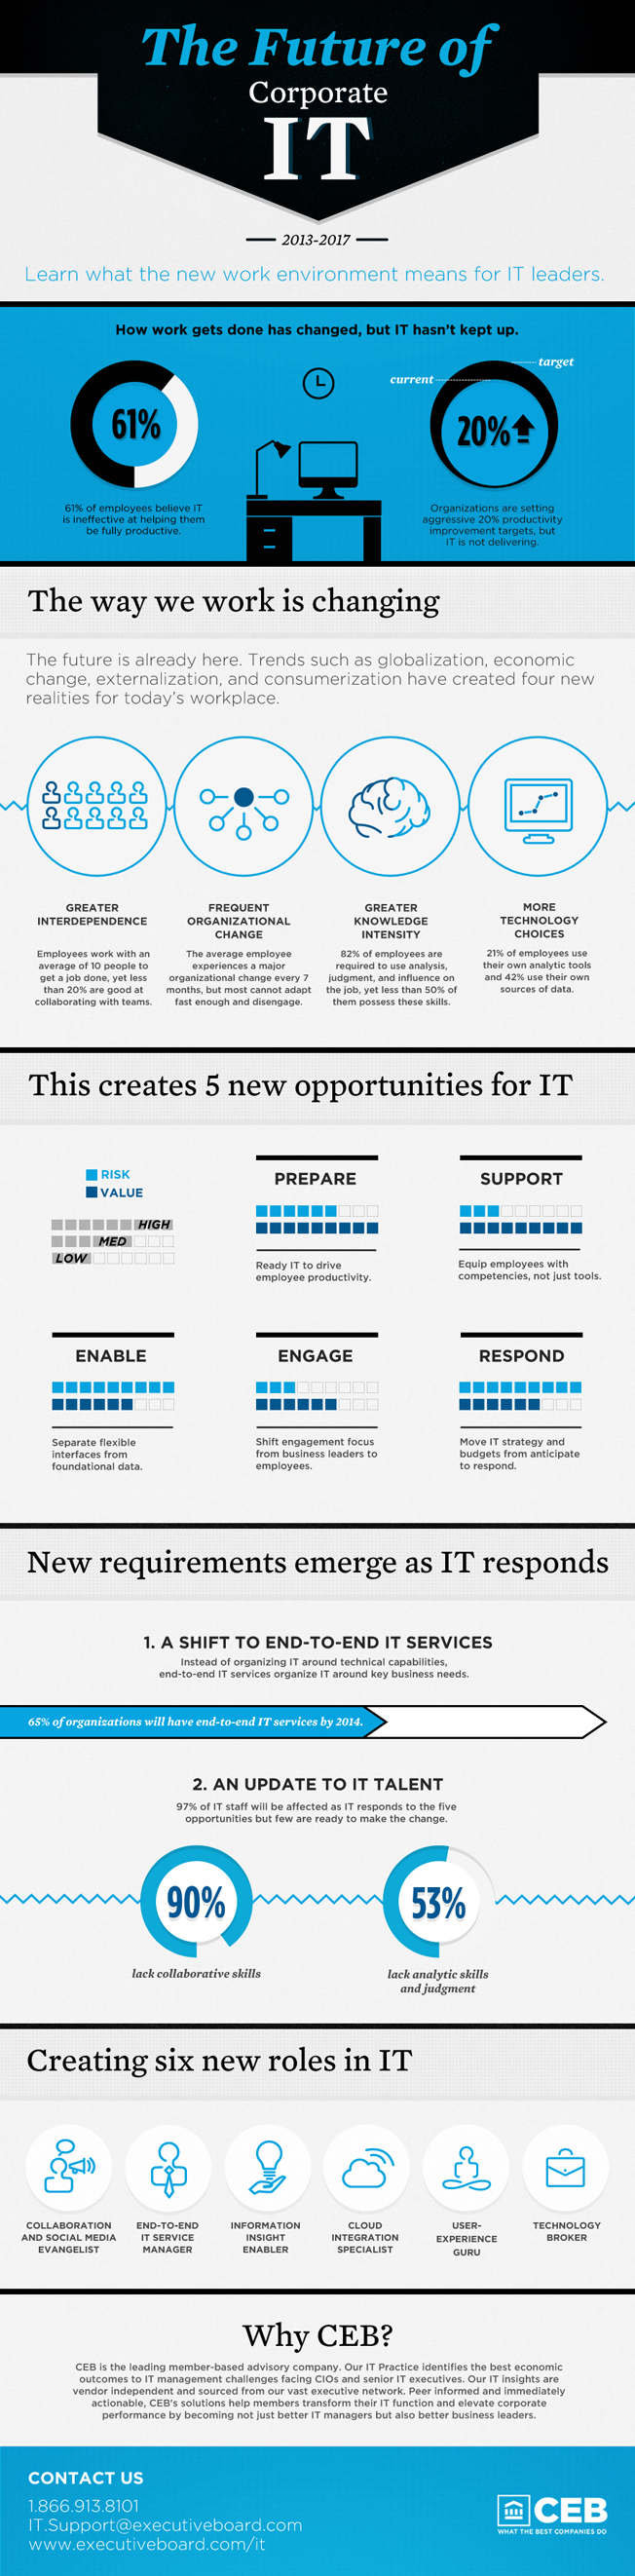 The Future of Corporate IT [Infographic]